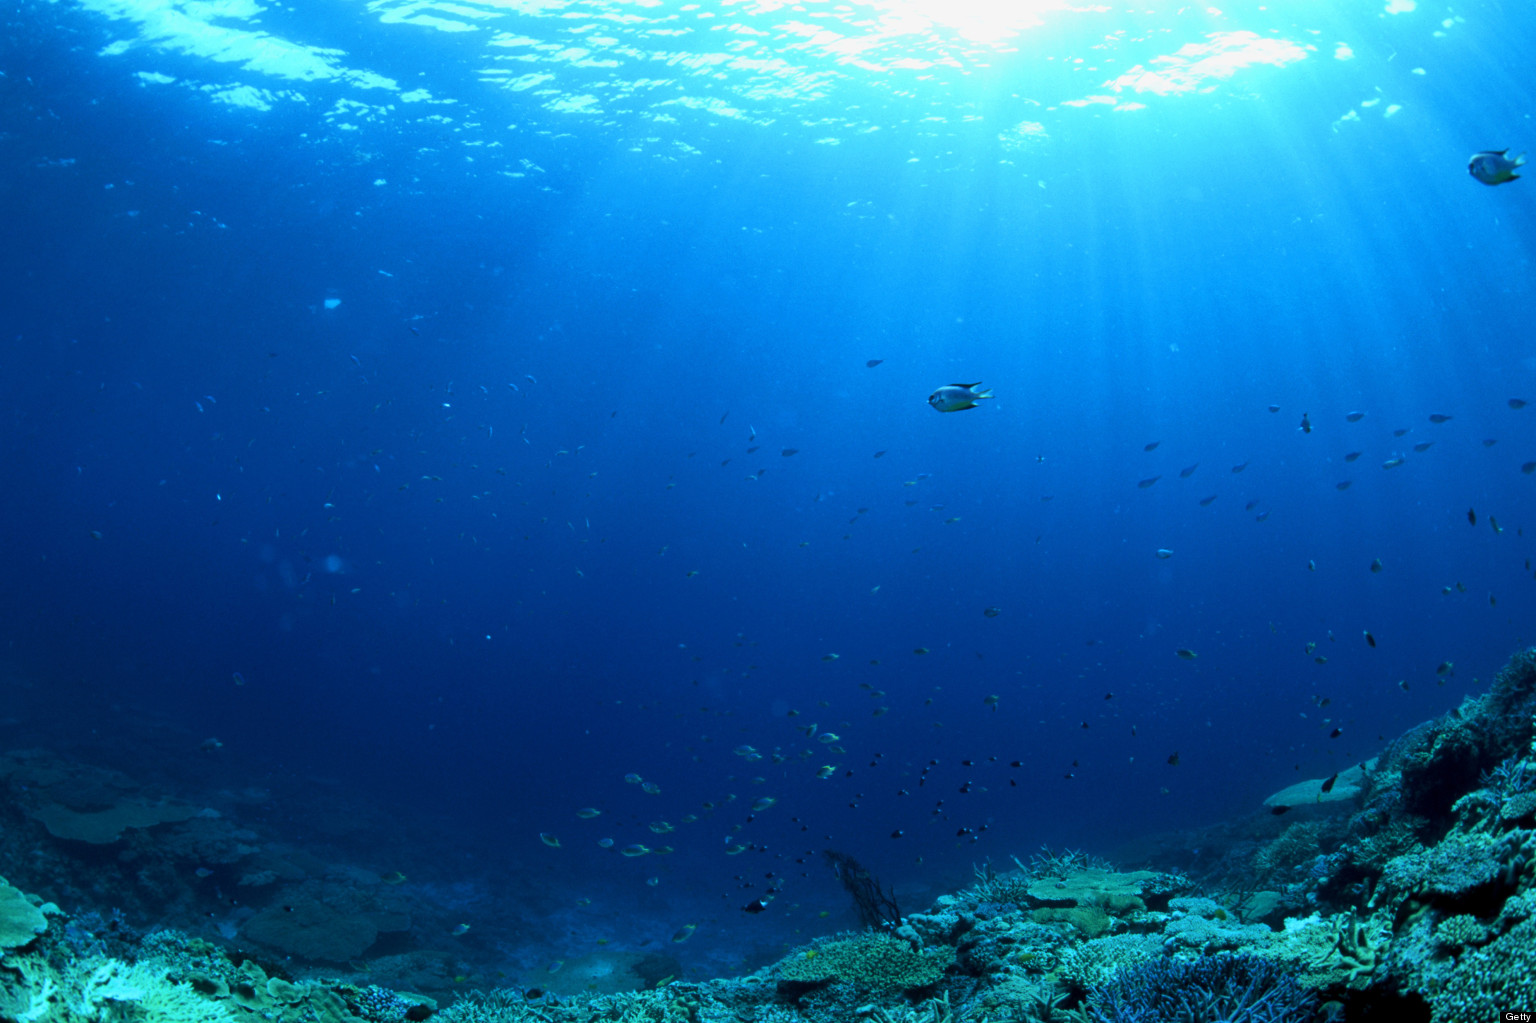 Oceans play a key role in maintaining global carbon cycle ...